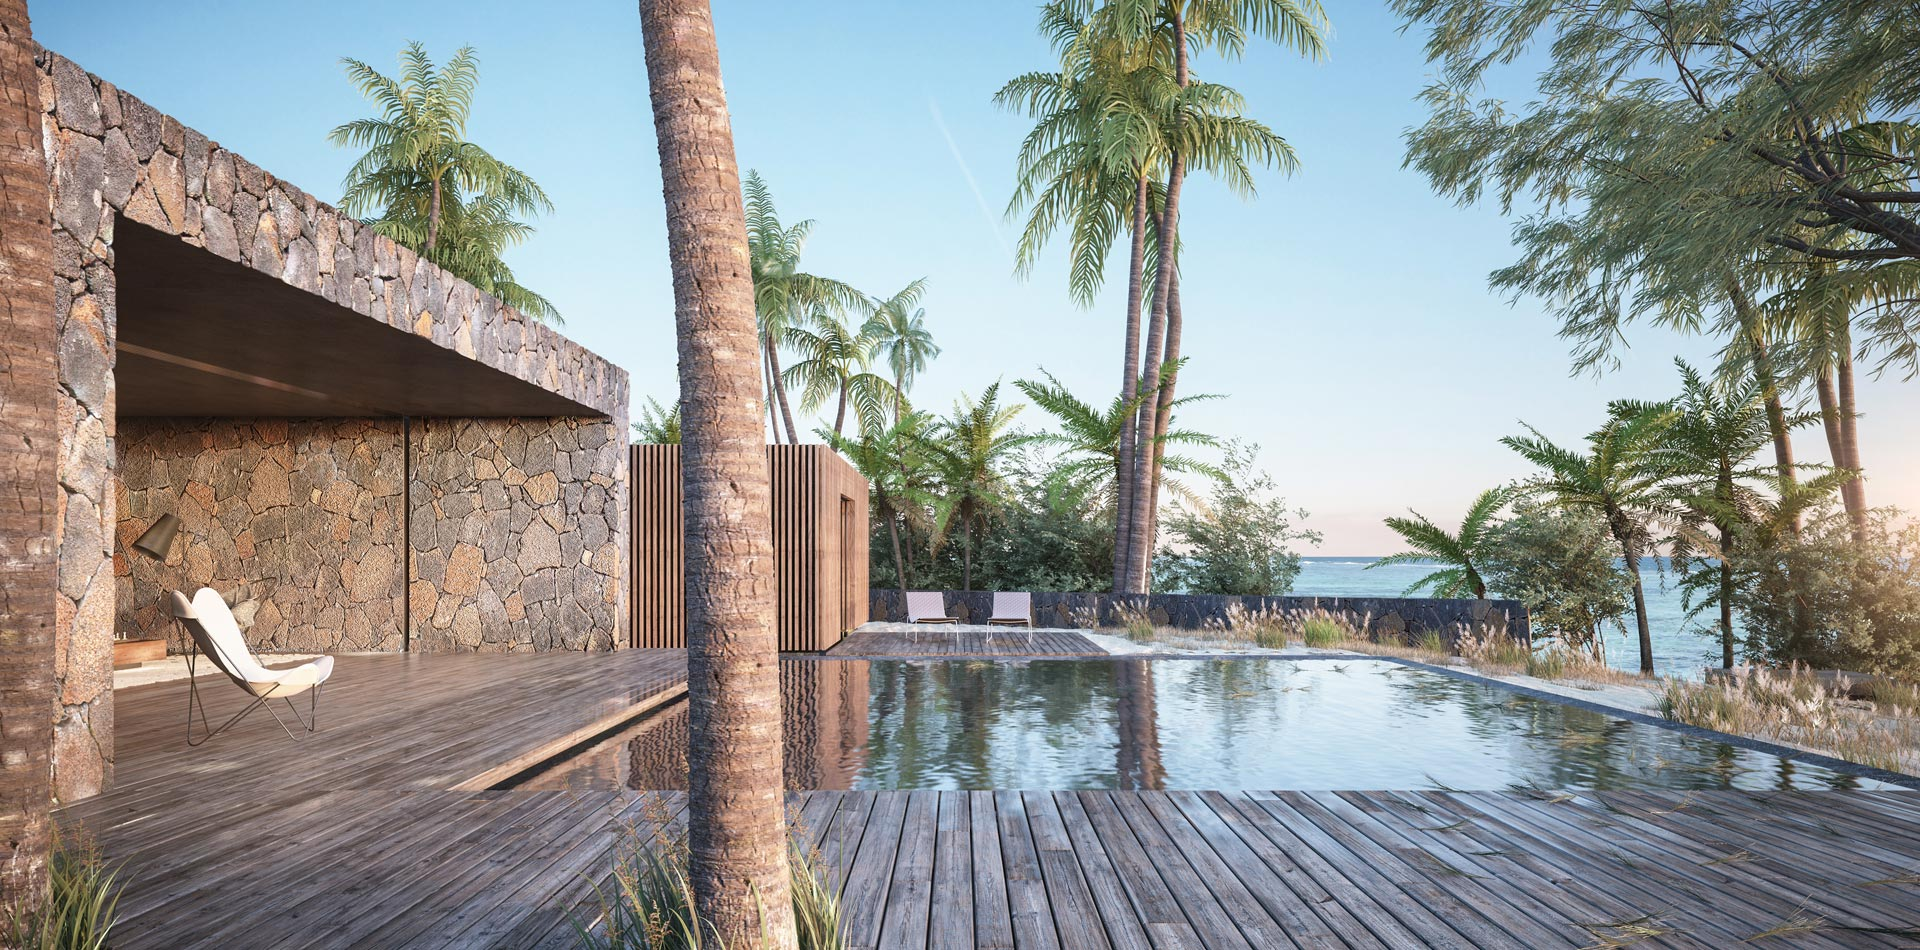 3D Visualisation 3ds max Terri Brown Architecture Interior Design Vray Mauritius East Coast Tropical Luxury Modern Deck Pool